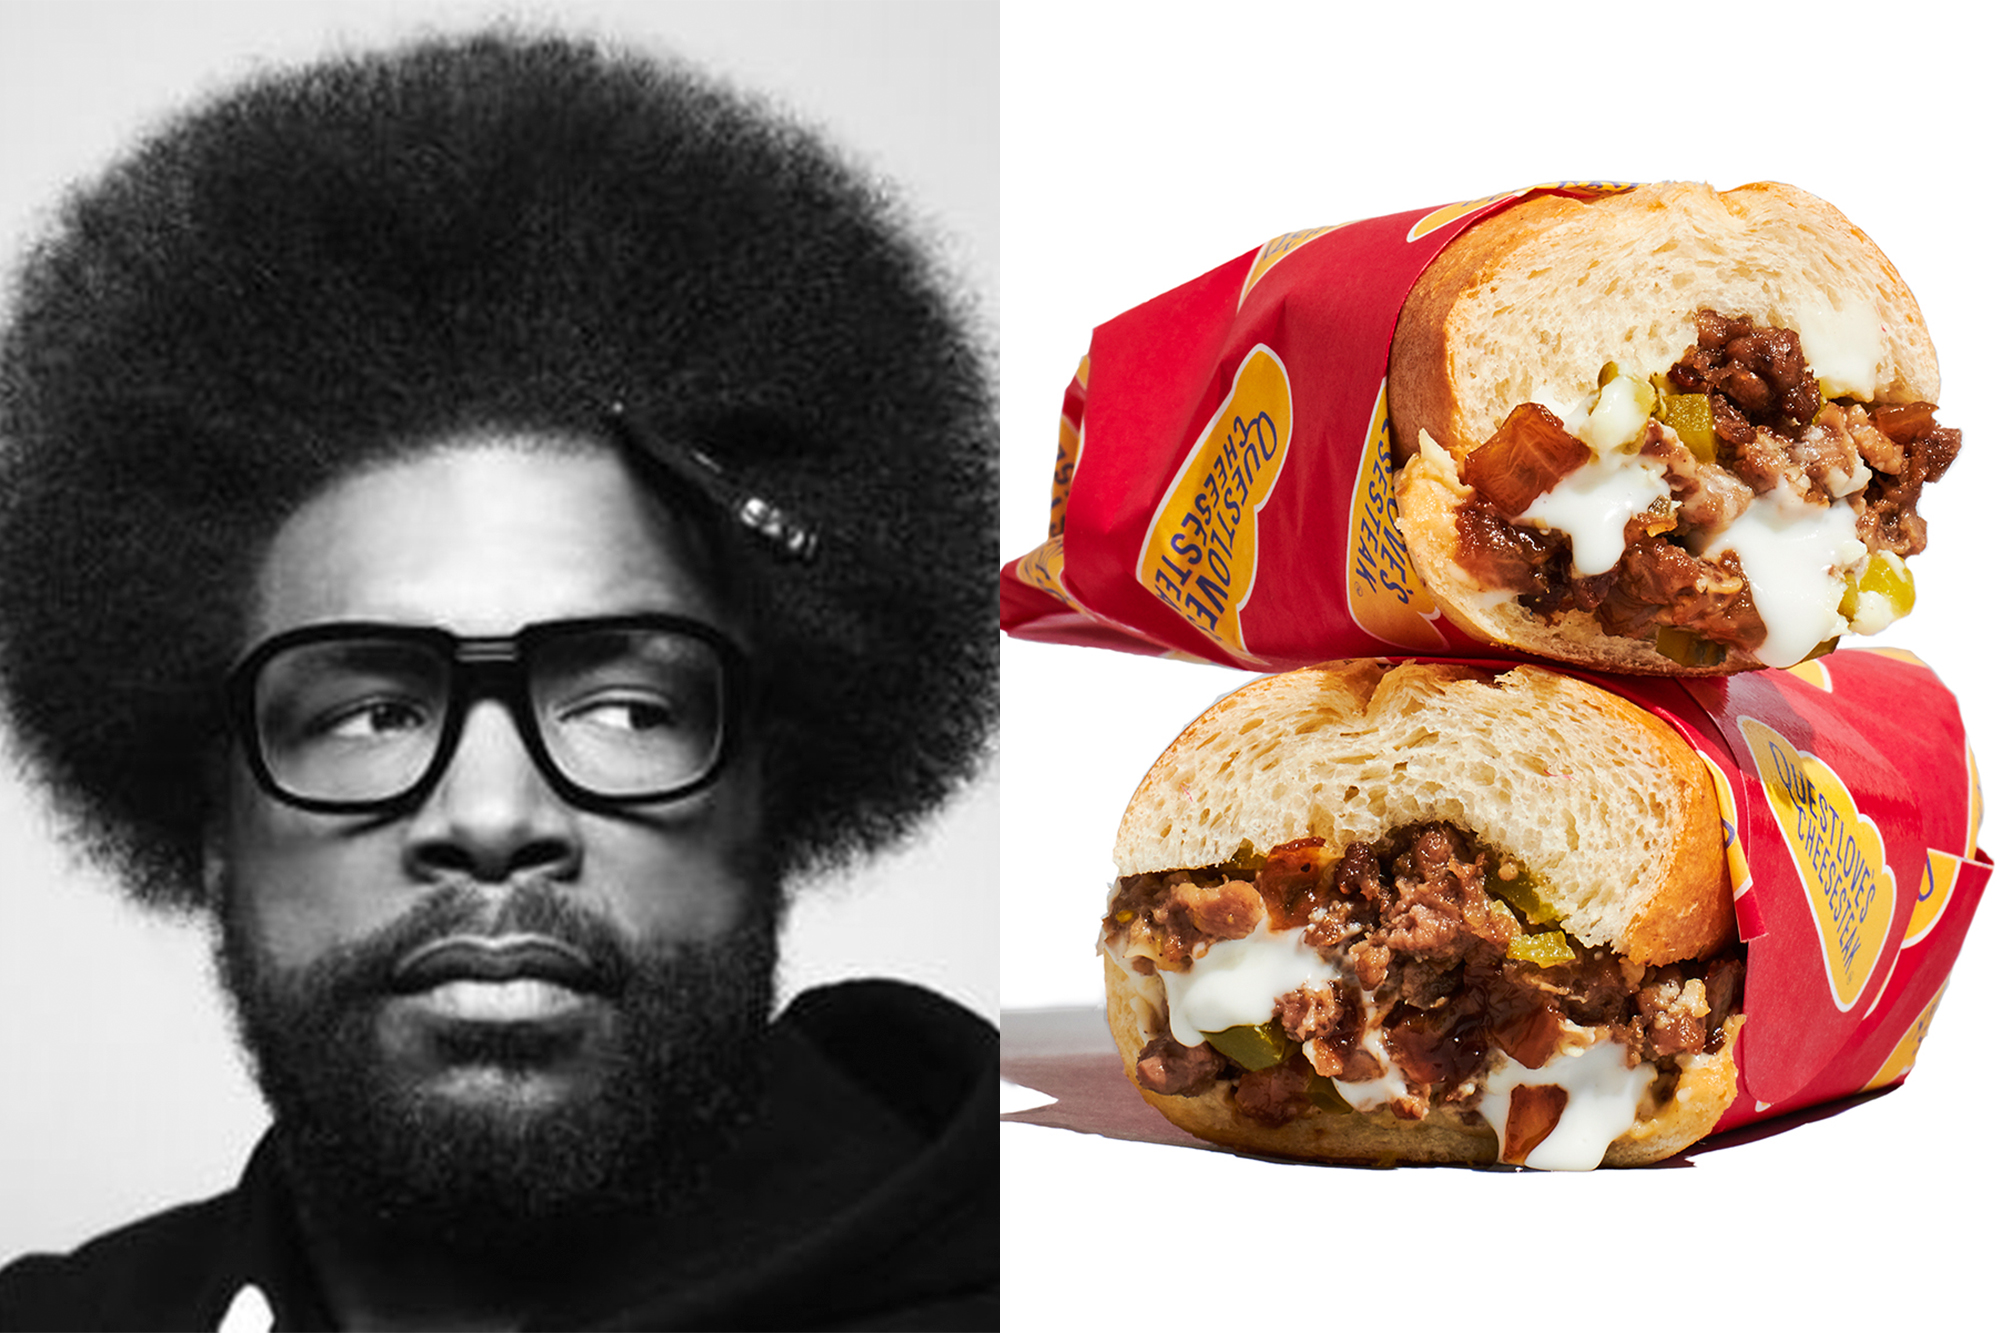 Portrait of Questlove and photo of cheesesteak sandwiches